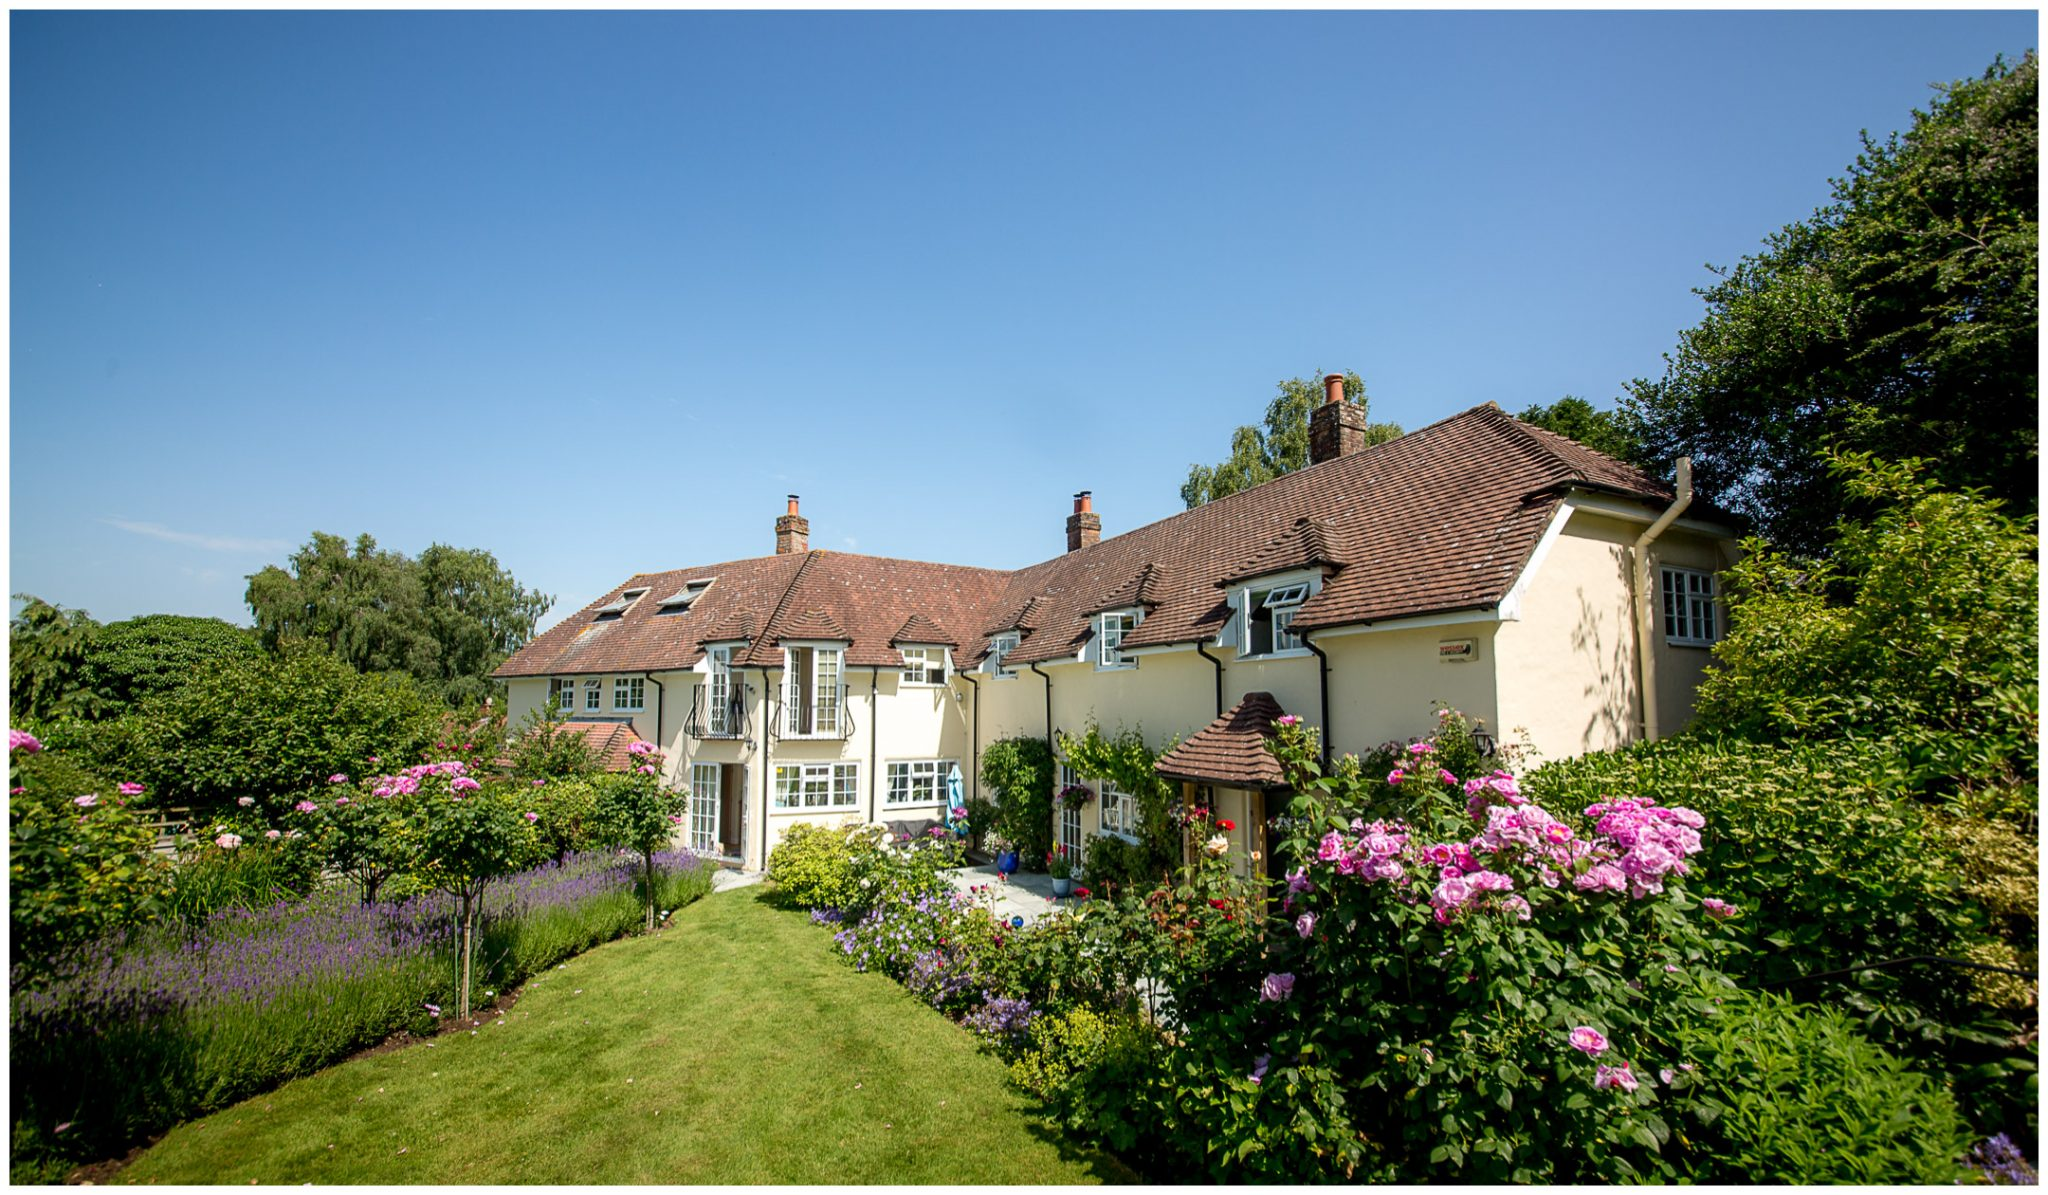 Family home gardens in the Summer sunshine for bridal preparations